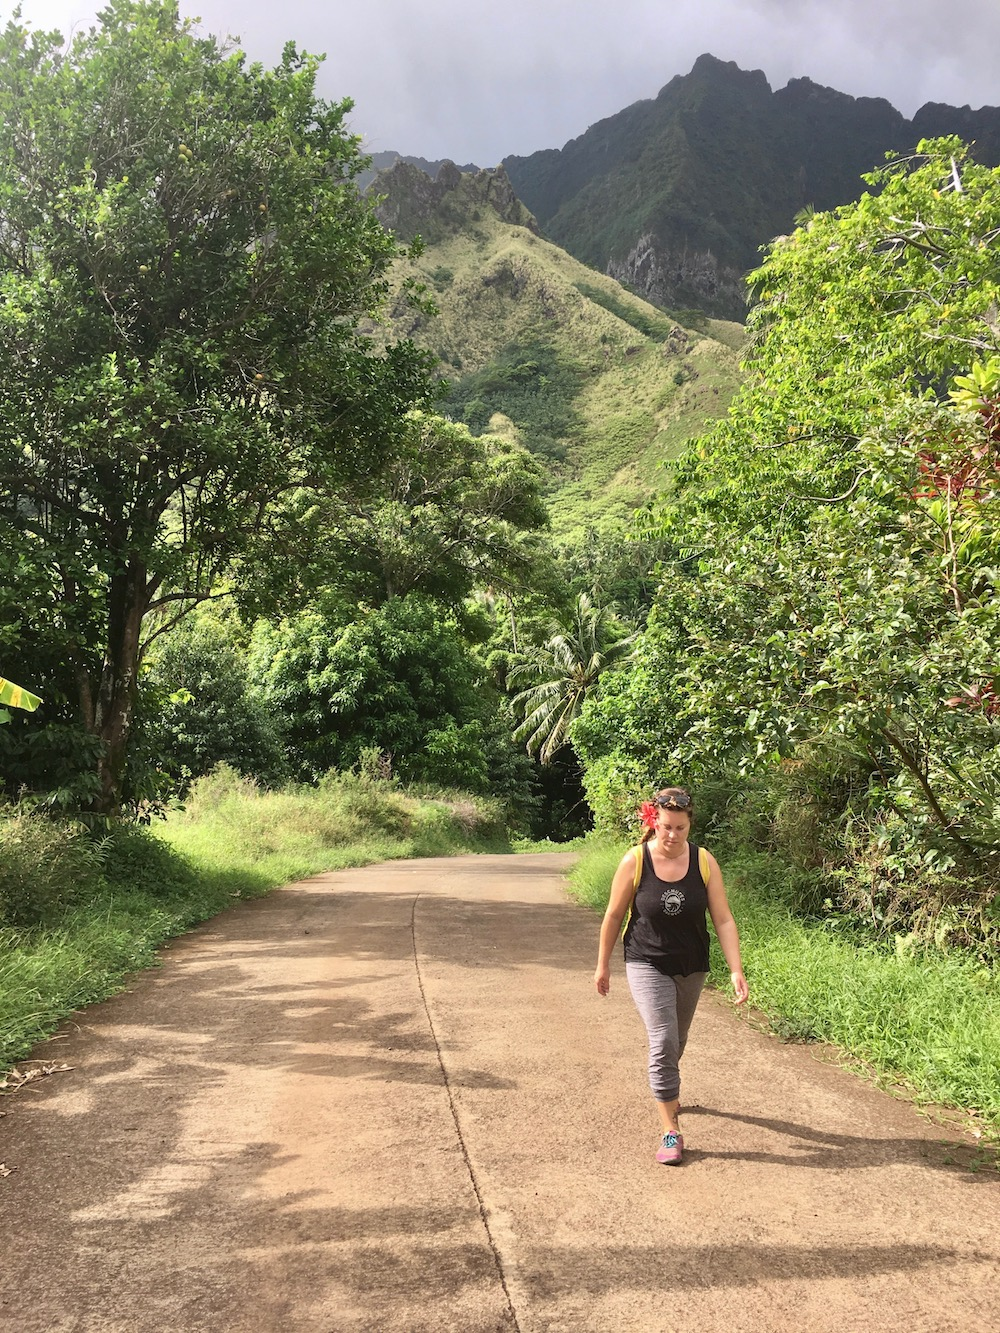 Hiking in the hills of Fatu Hiva.